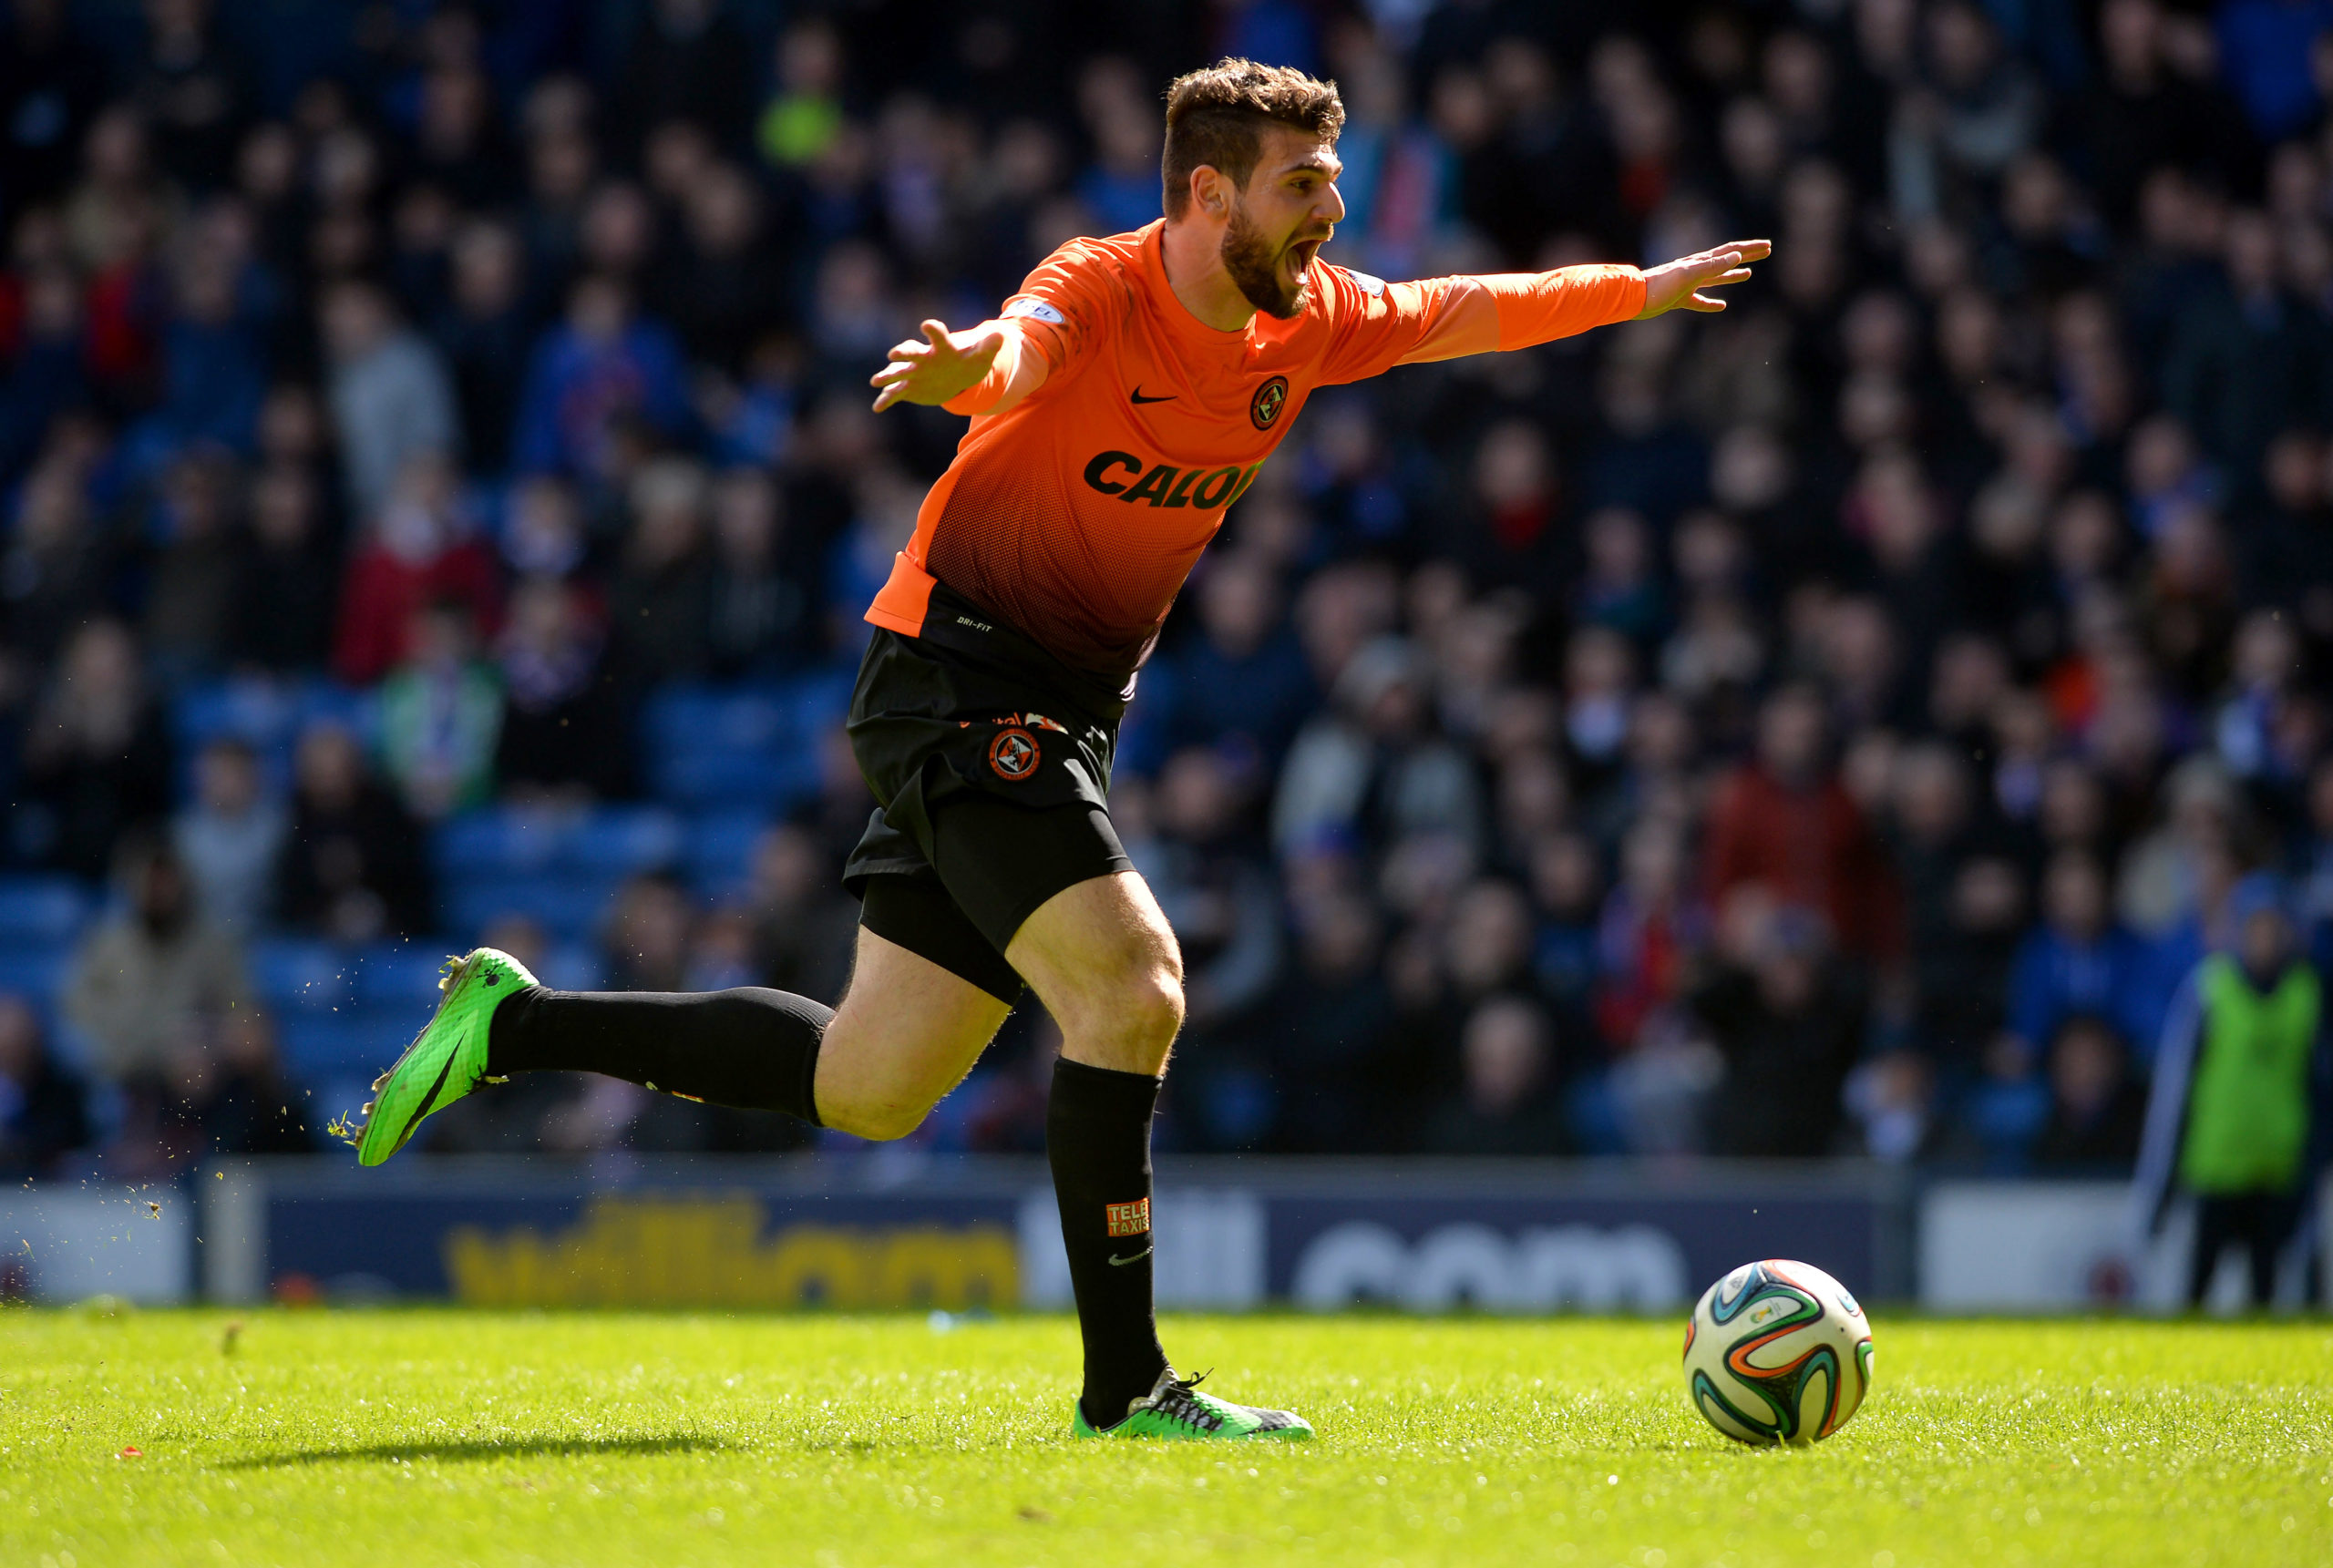 Ciftci is a shadow of the player he was at Dundee United